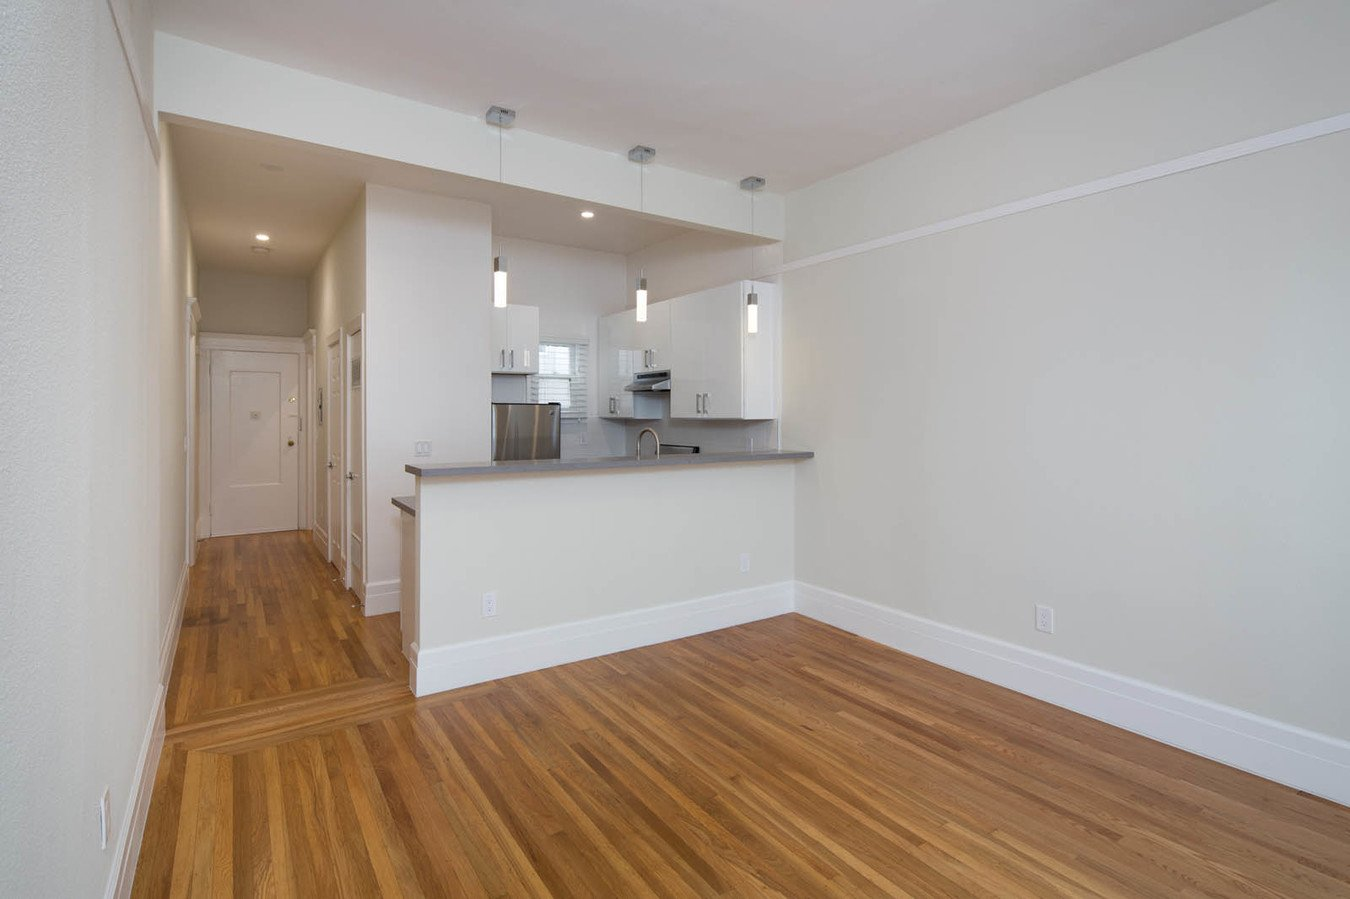 1 Bedroom 1 Bathroom Apartment for rent at 3605 20th Street Apartments in San Francisco, CA